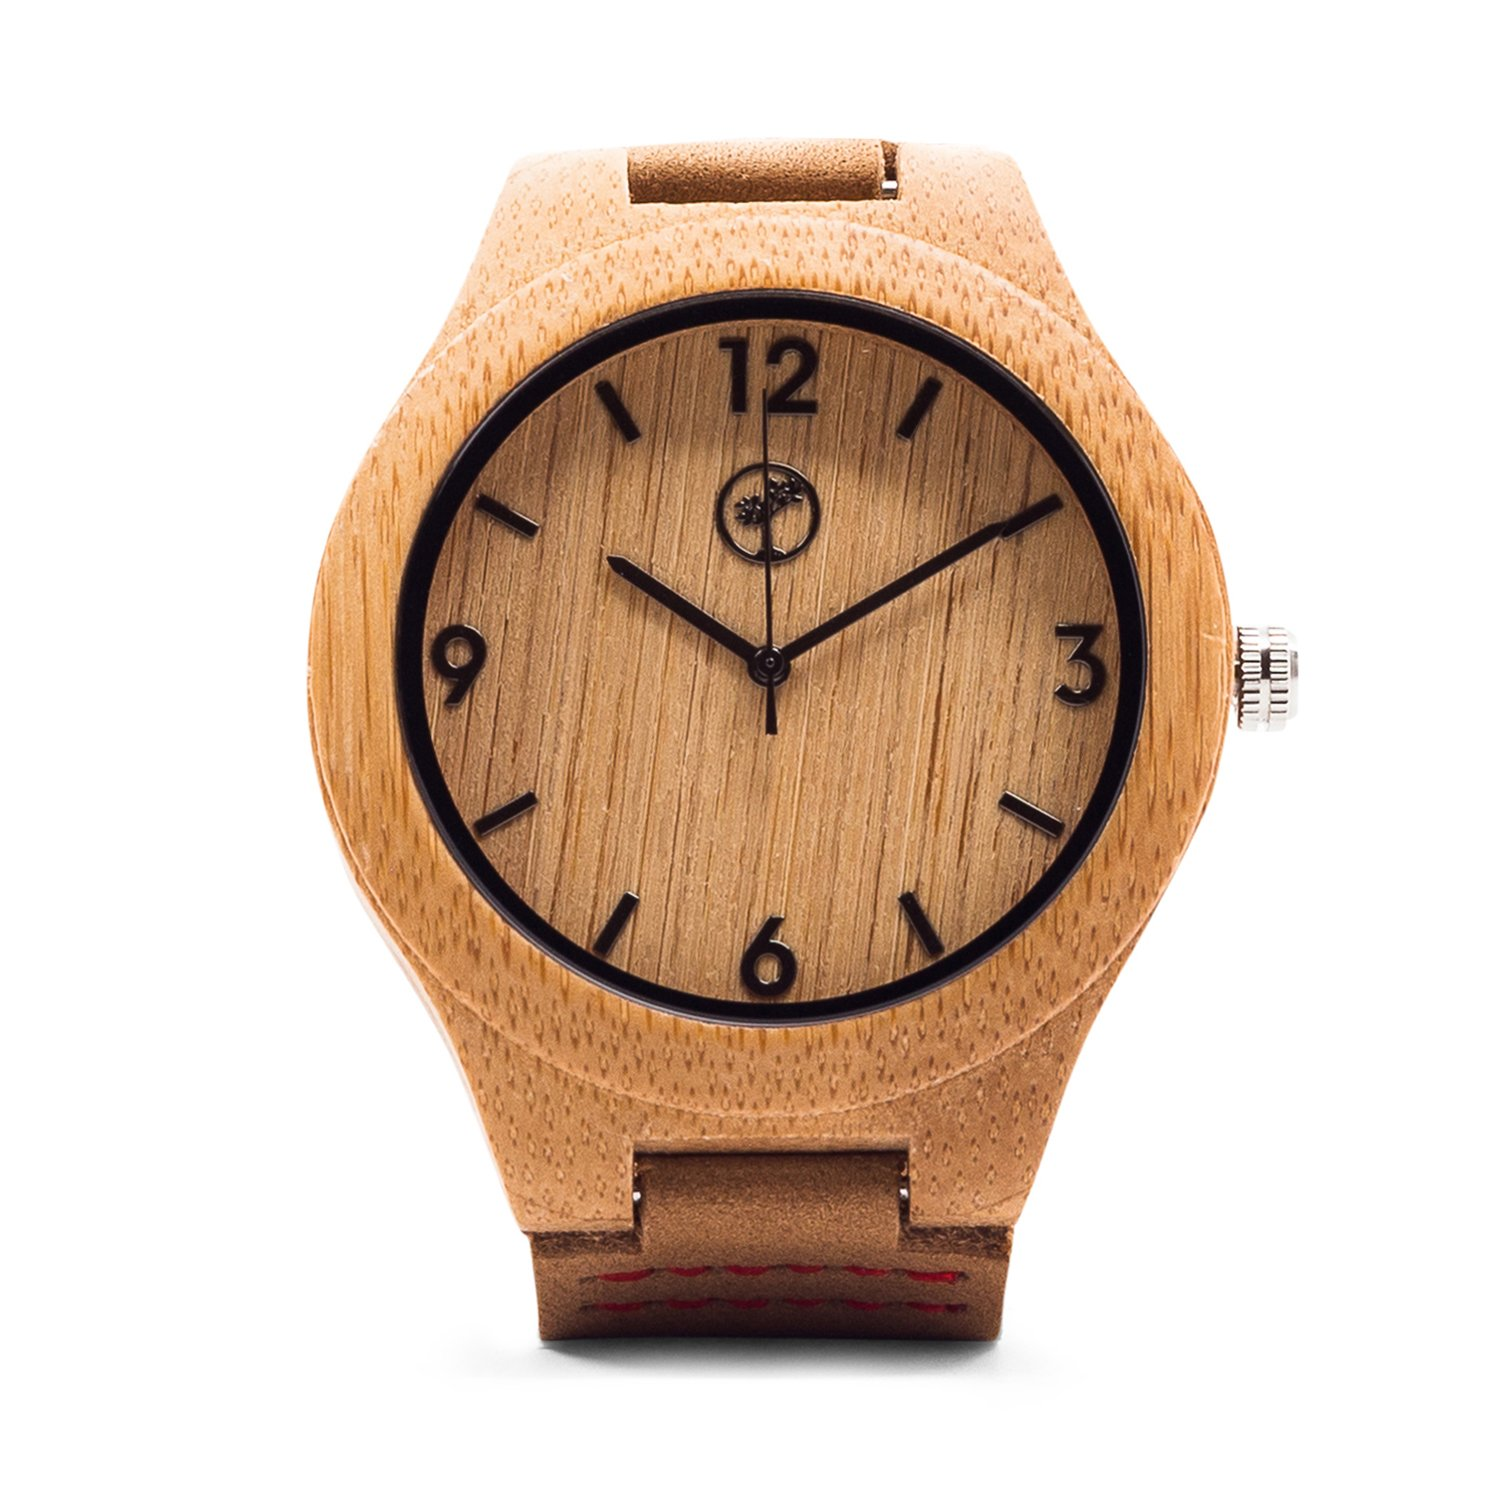 wonbee women cheap full for free watch shopping product skull men wristwatches brown bracelets strap watches wooden unique gift wood bamboo leather wholesale